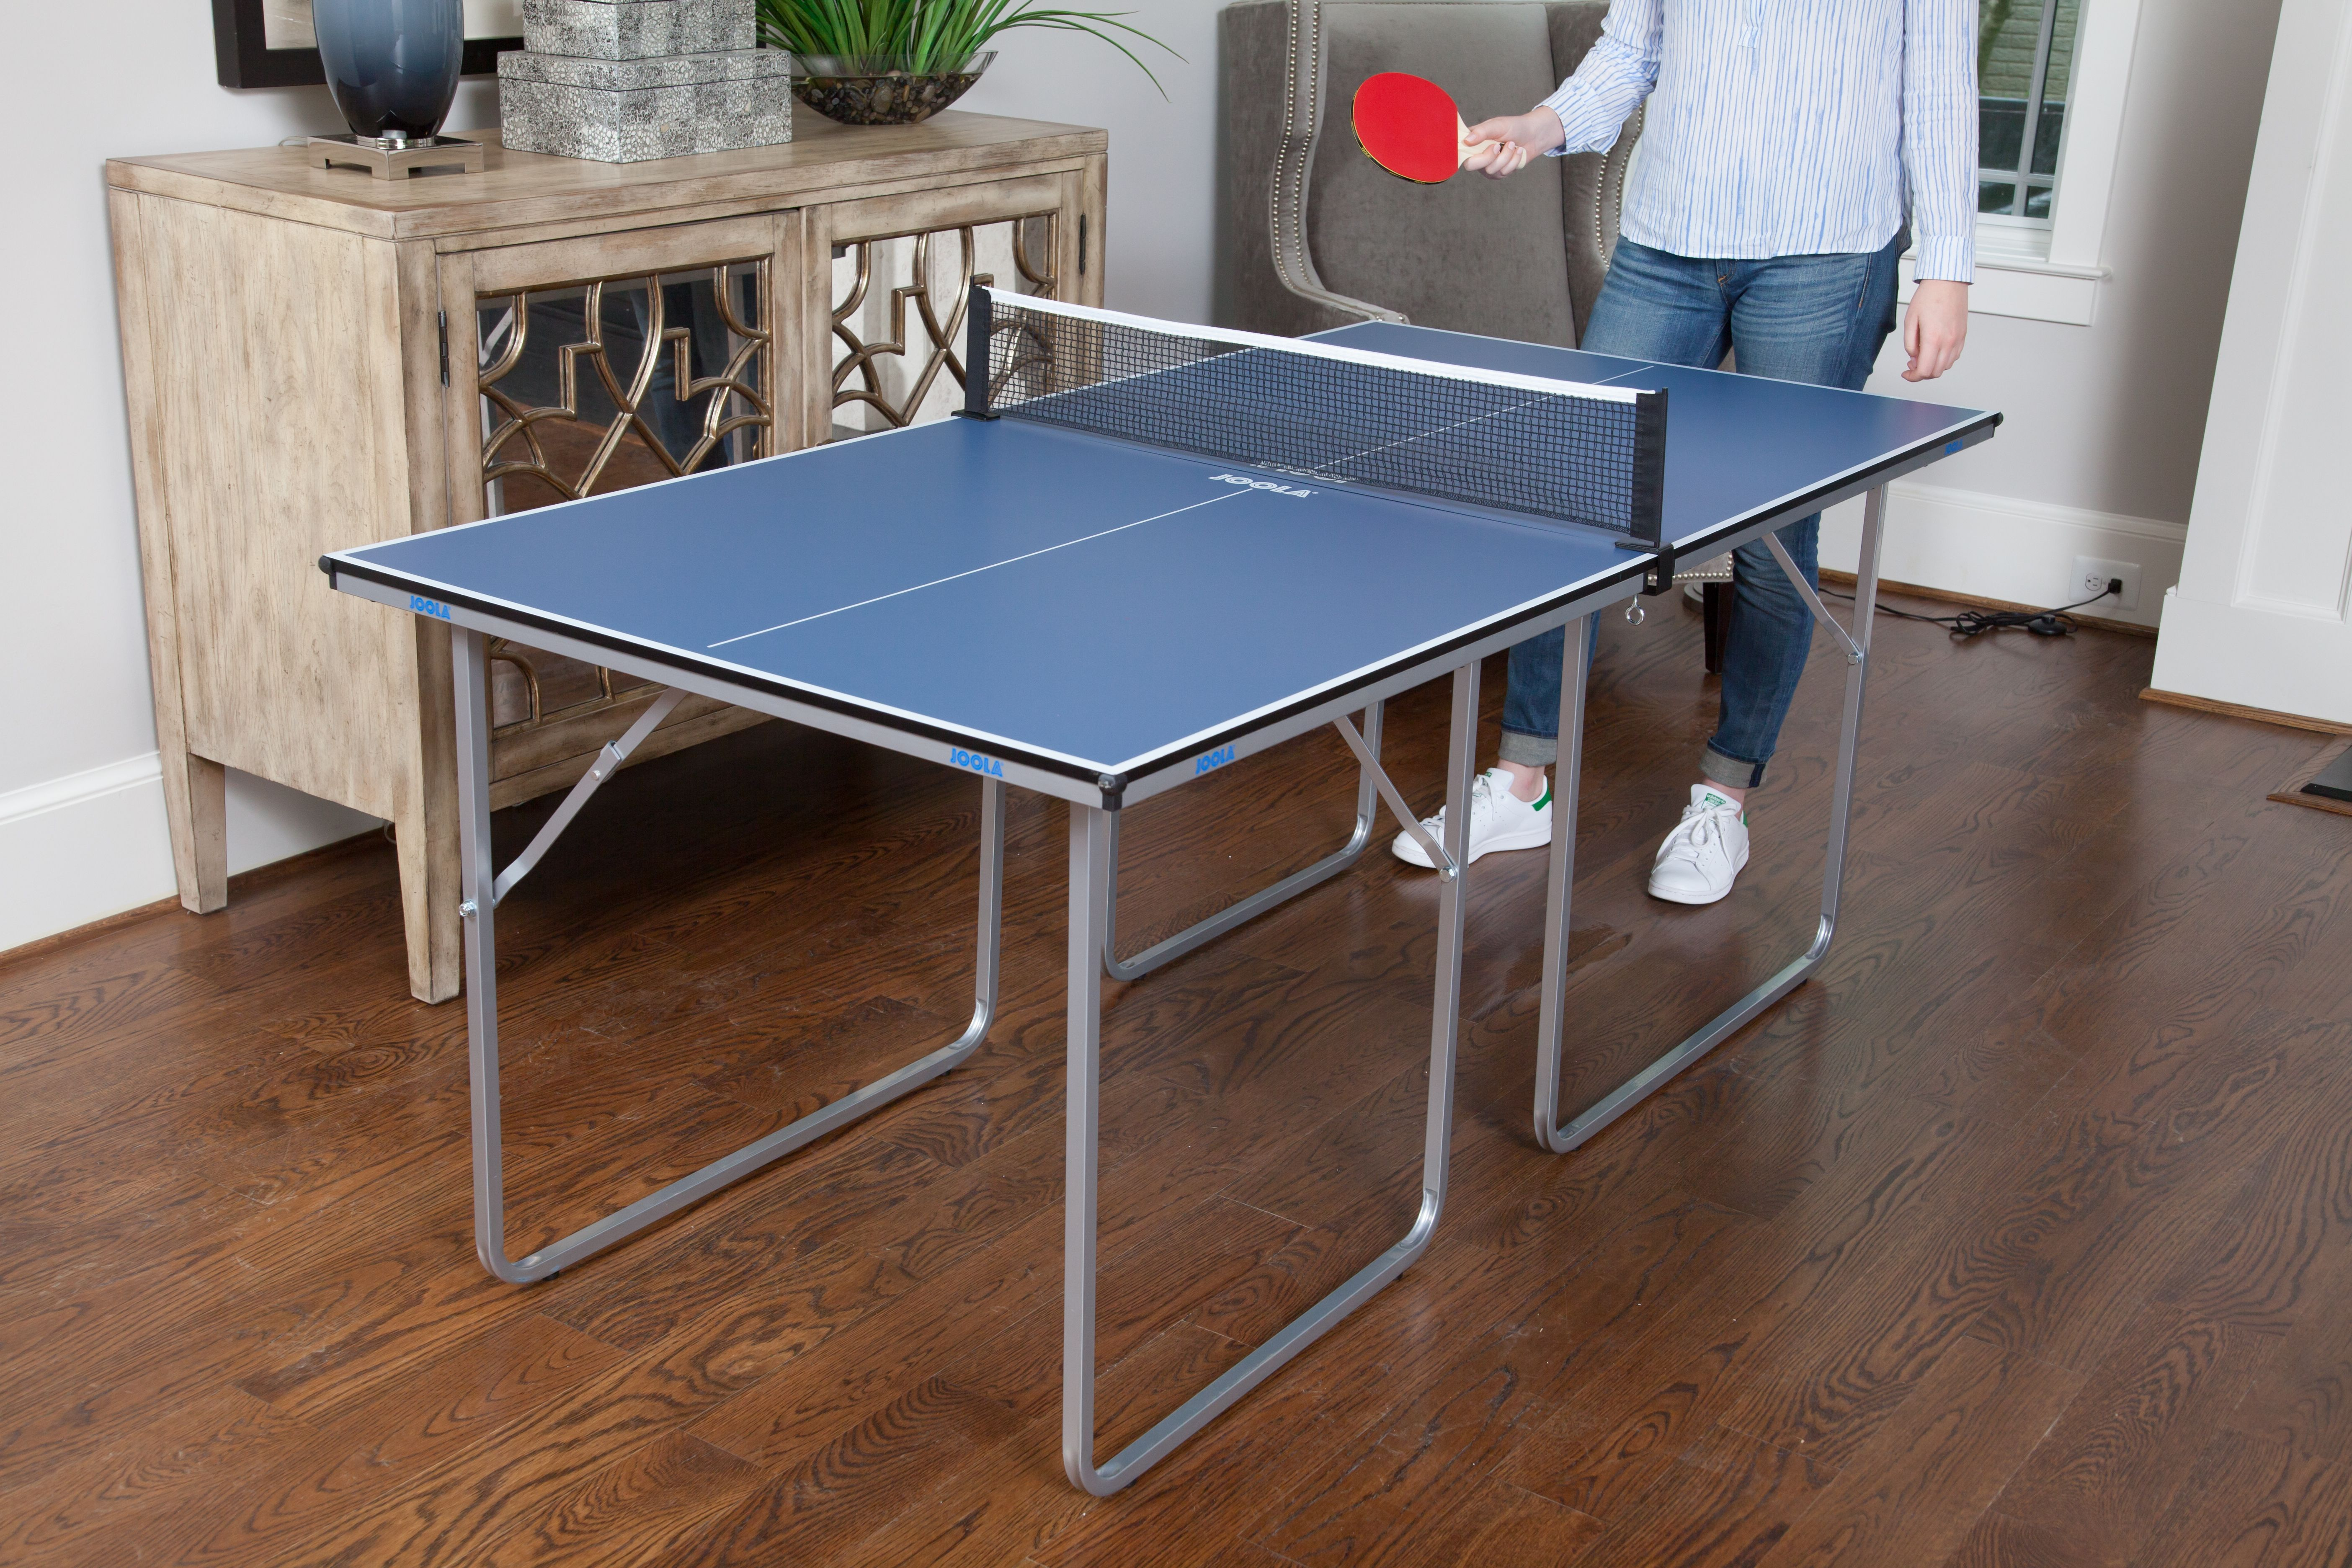 Joola Midsize Table Tennis Table Joola In 2020 Table Board Game Table Small Spaces